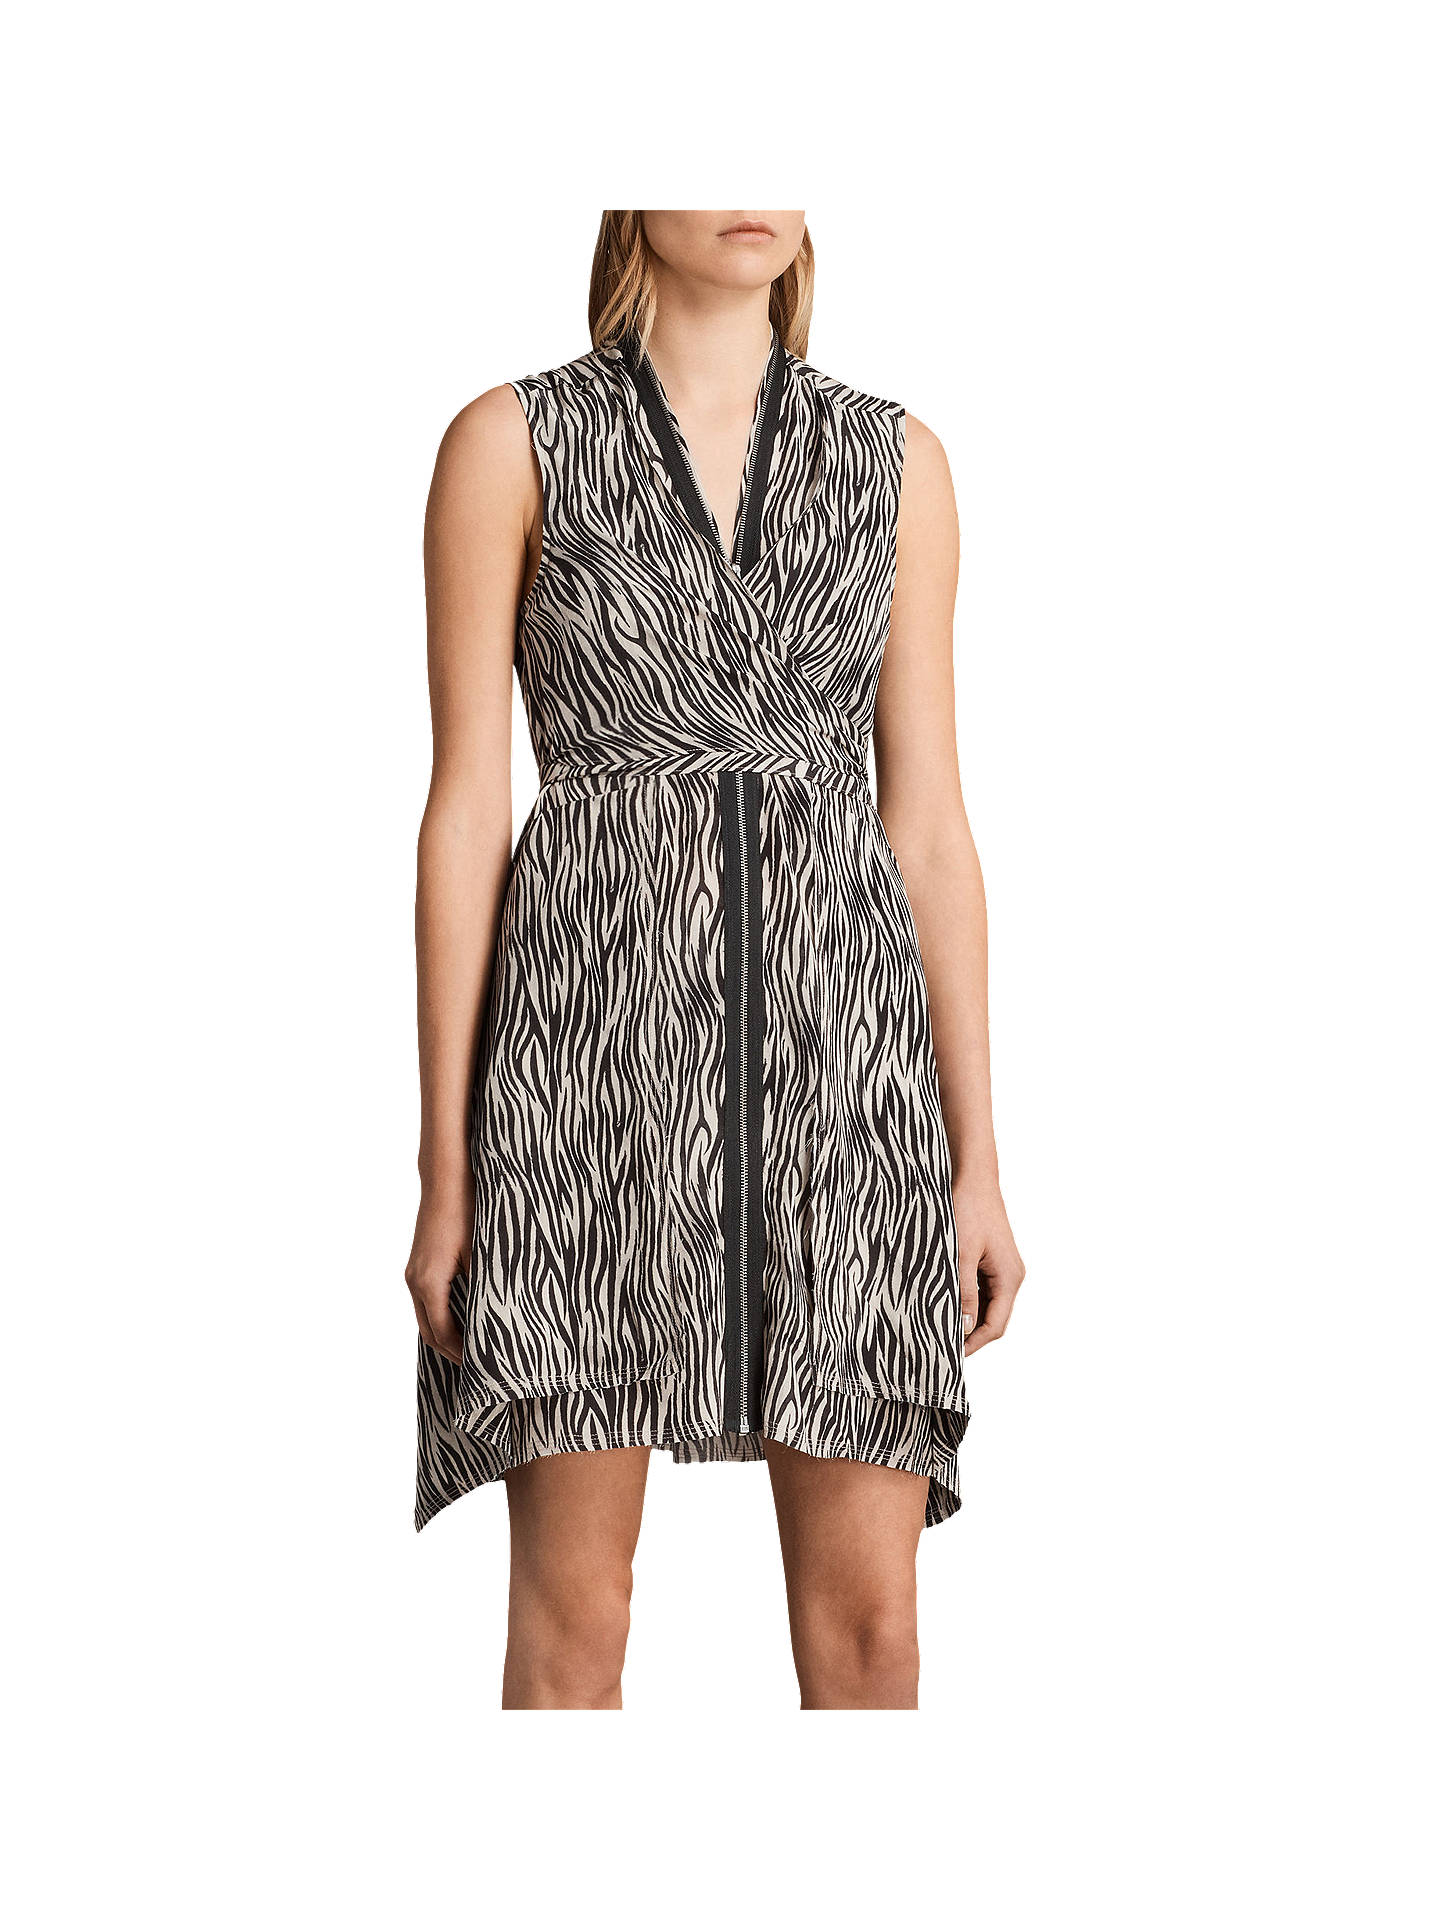 29009861bbe1ae Buy AllSaints Jayda Silk Zebra Dress